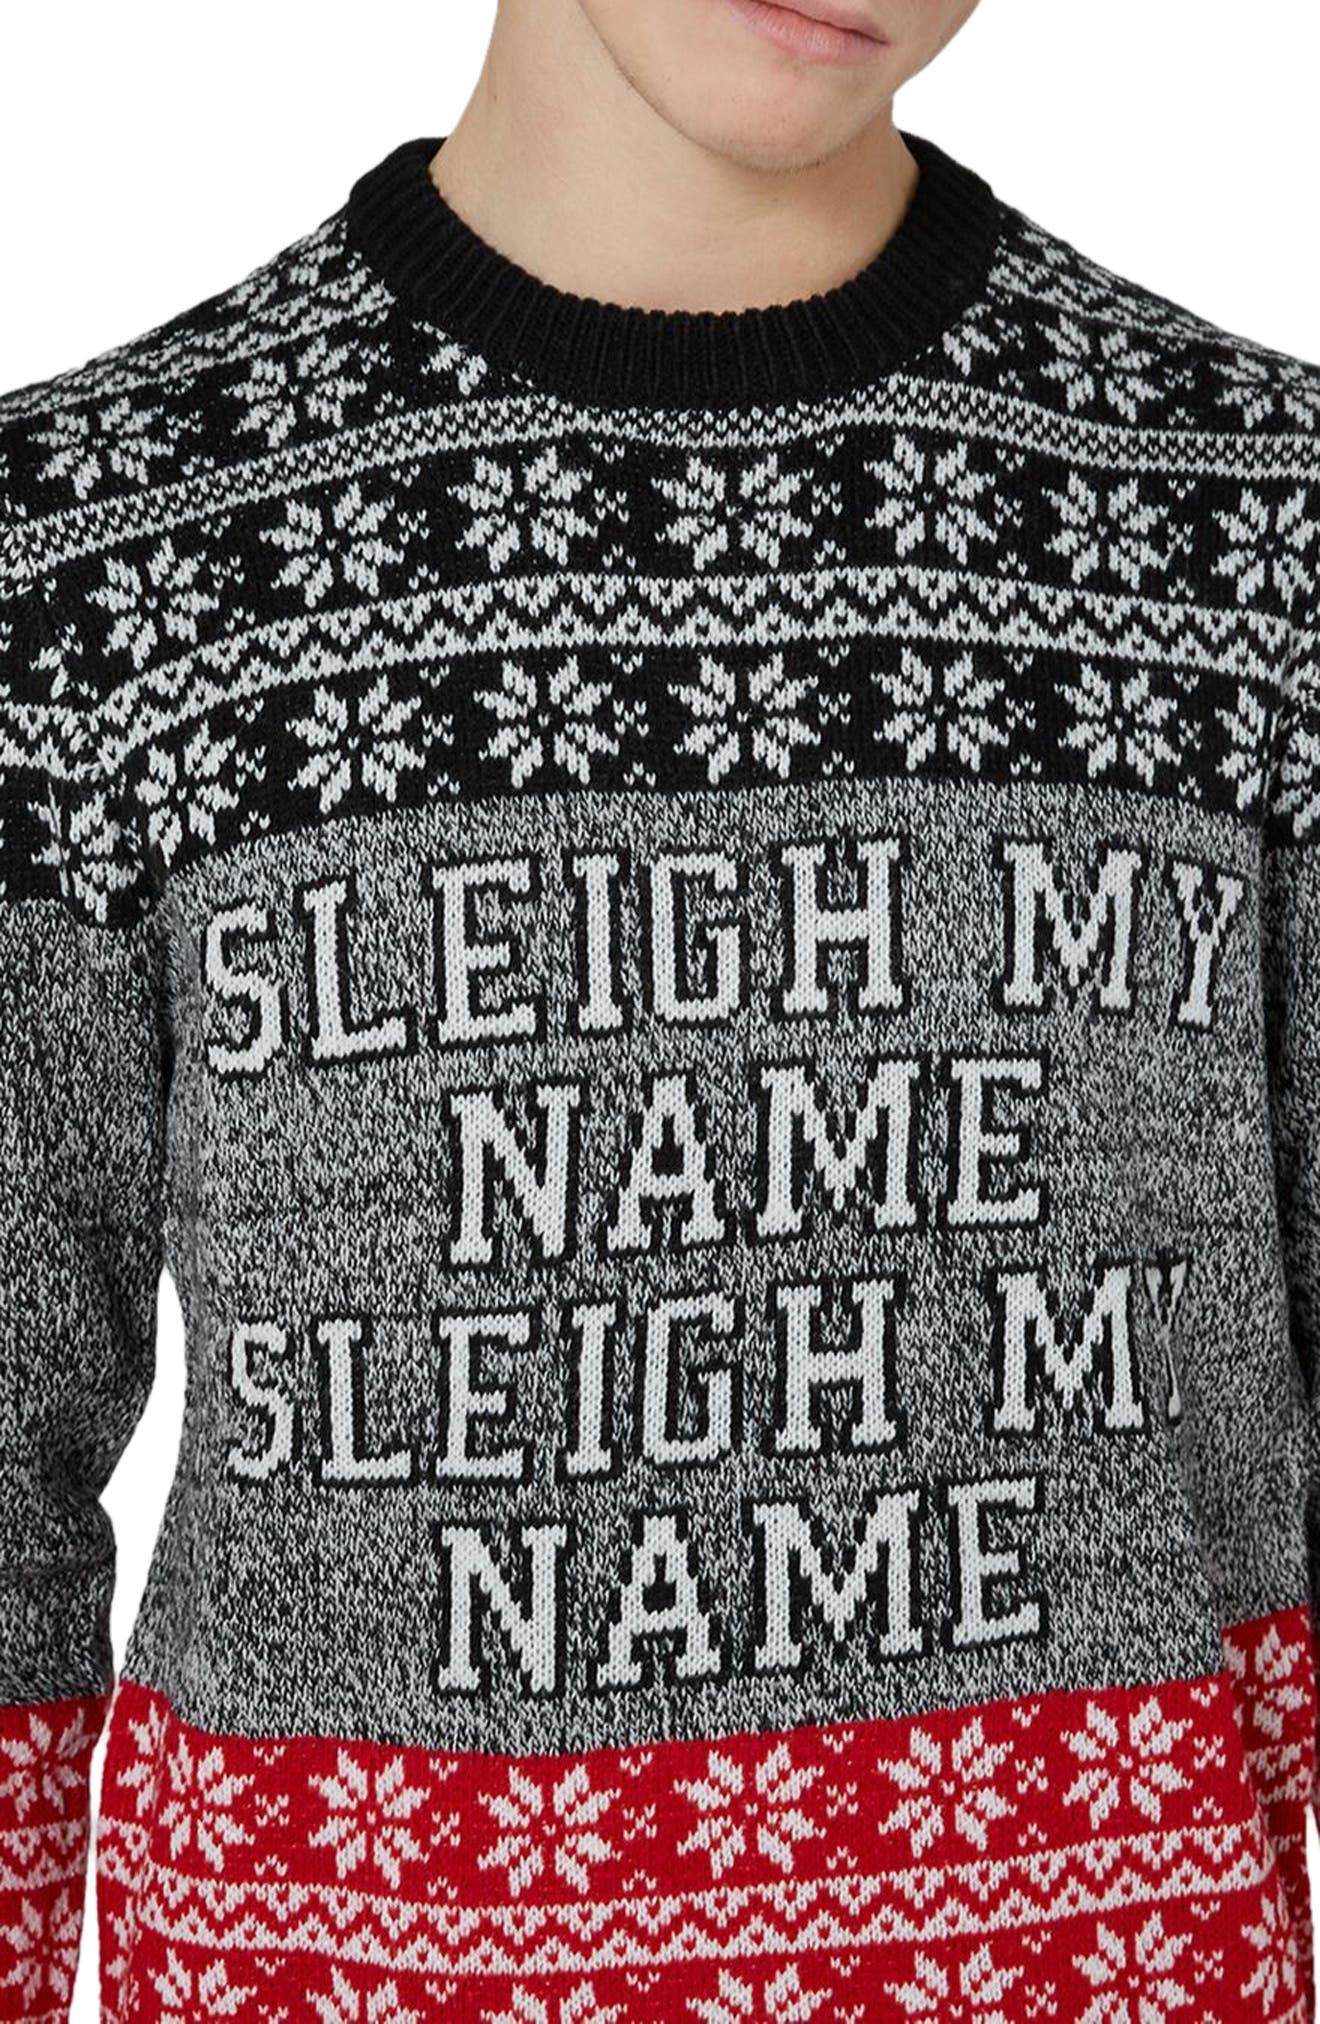 Sleigh My Name Sweater,                             Alternate thumbnail 2, color,